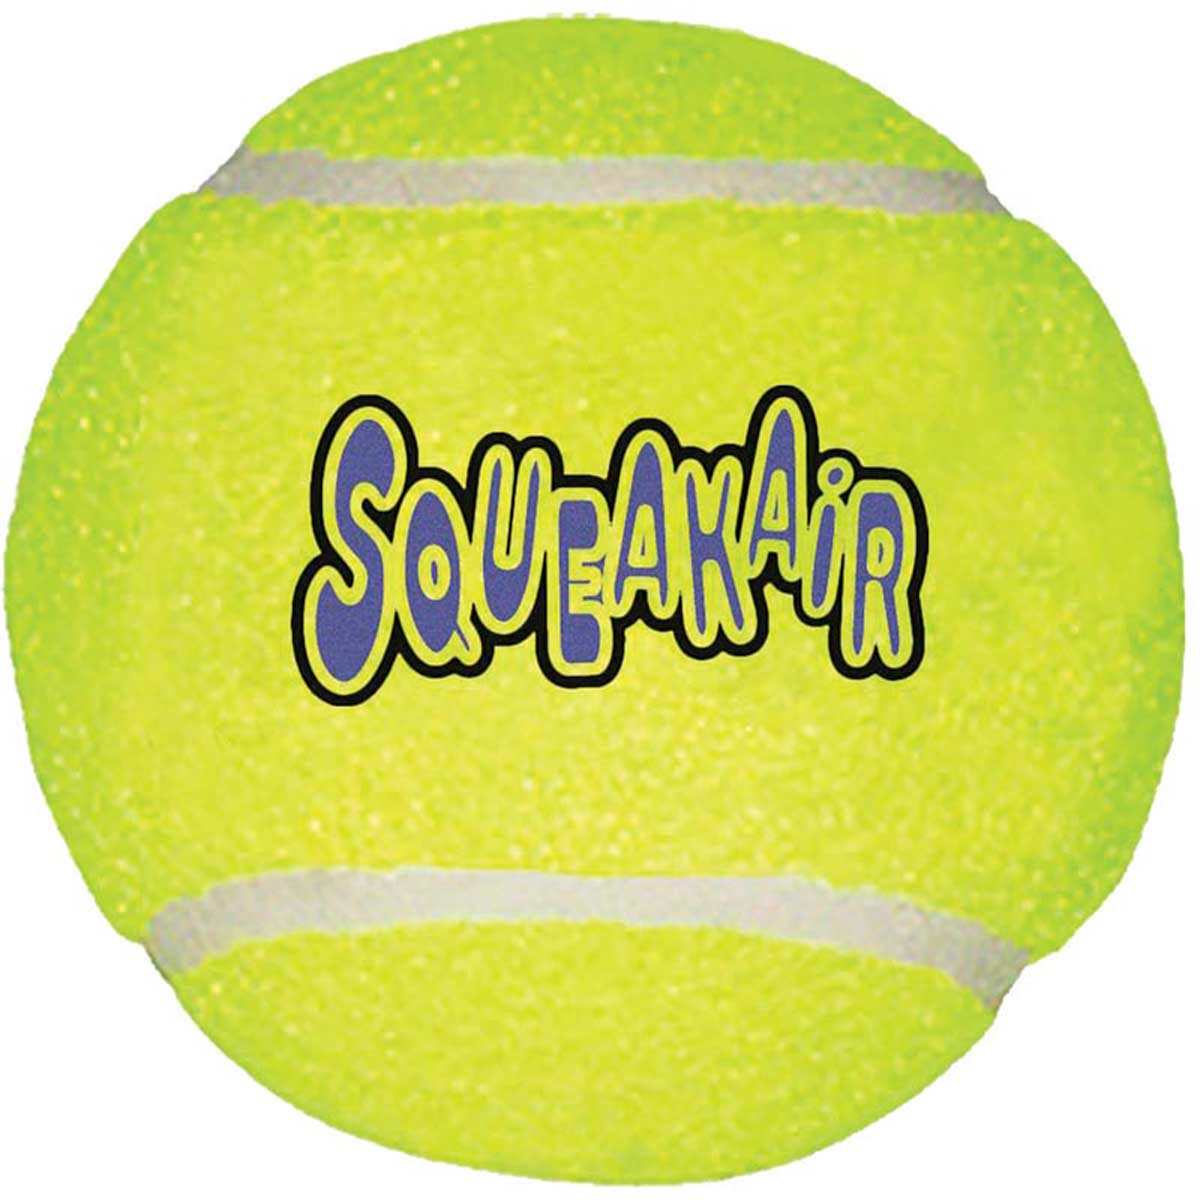 KONG XL Squeakair Tennis Ball 4 inches